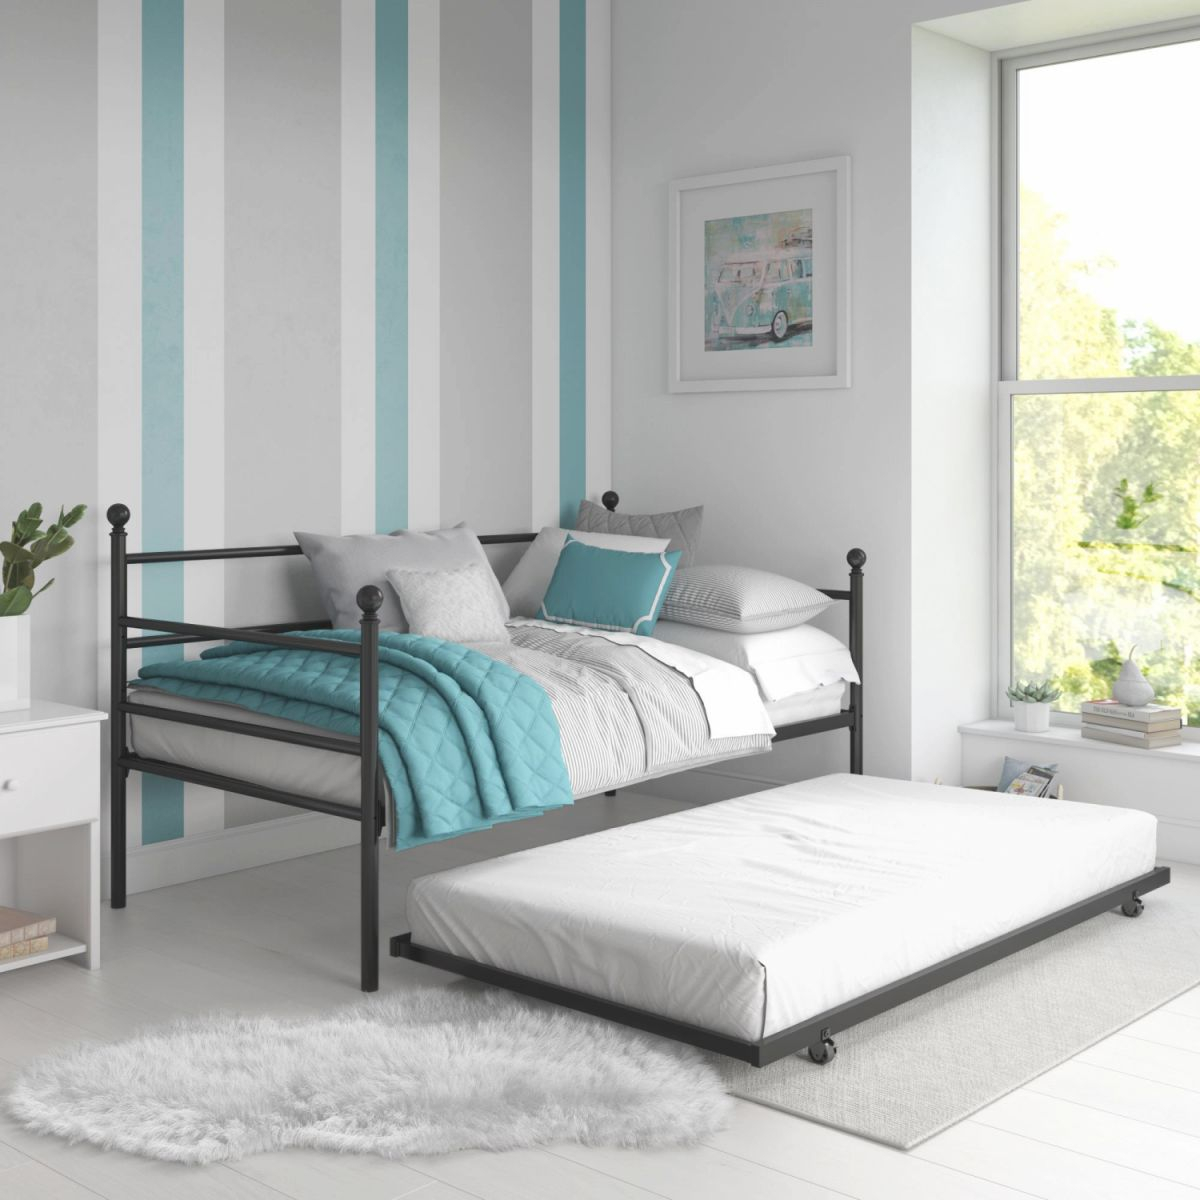 Details About Modern Metal Day Bed With Trundle Twin Size Day Bed Frame  Bedroom Furniture within Full Size Bed With Trundle Bedroom Set